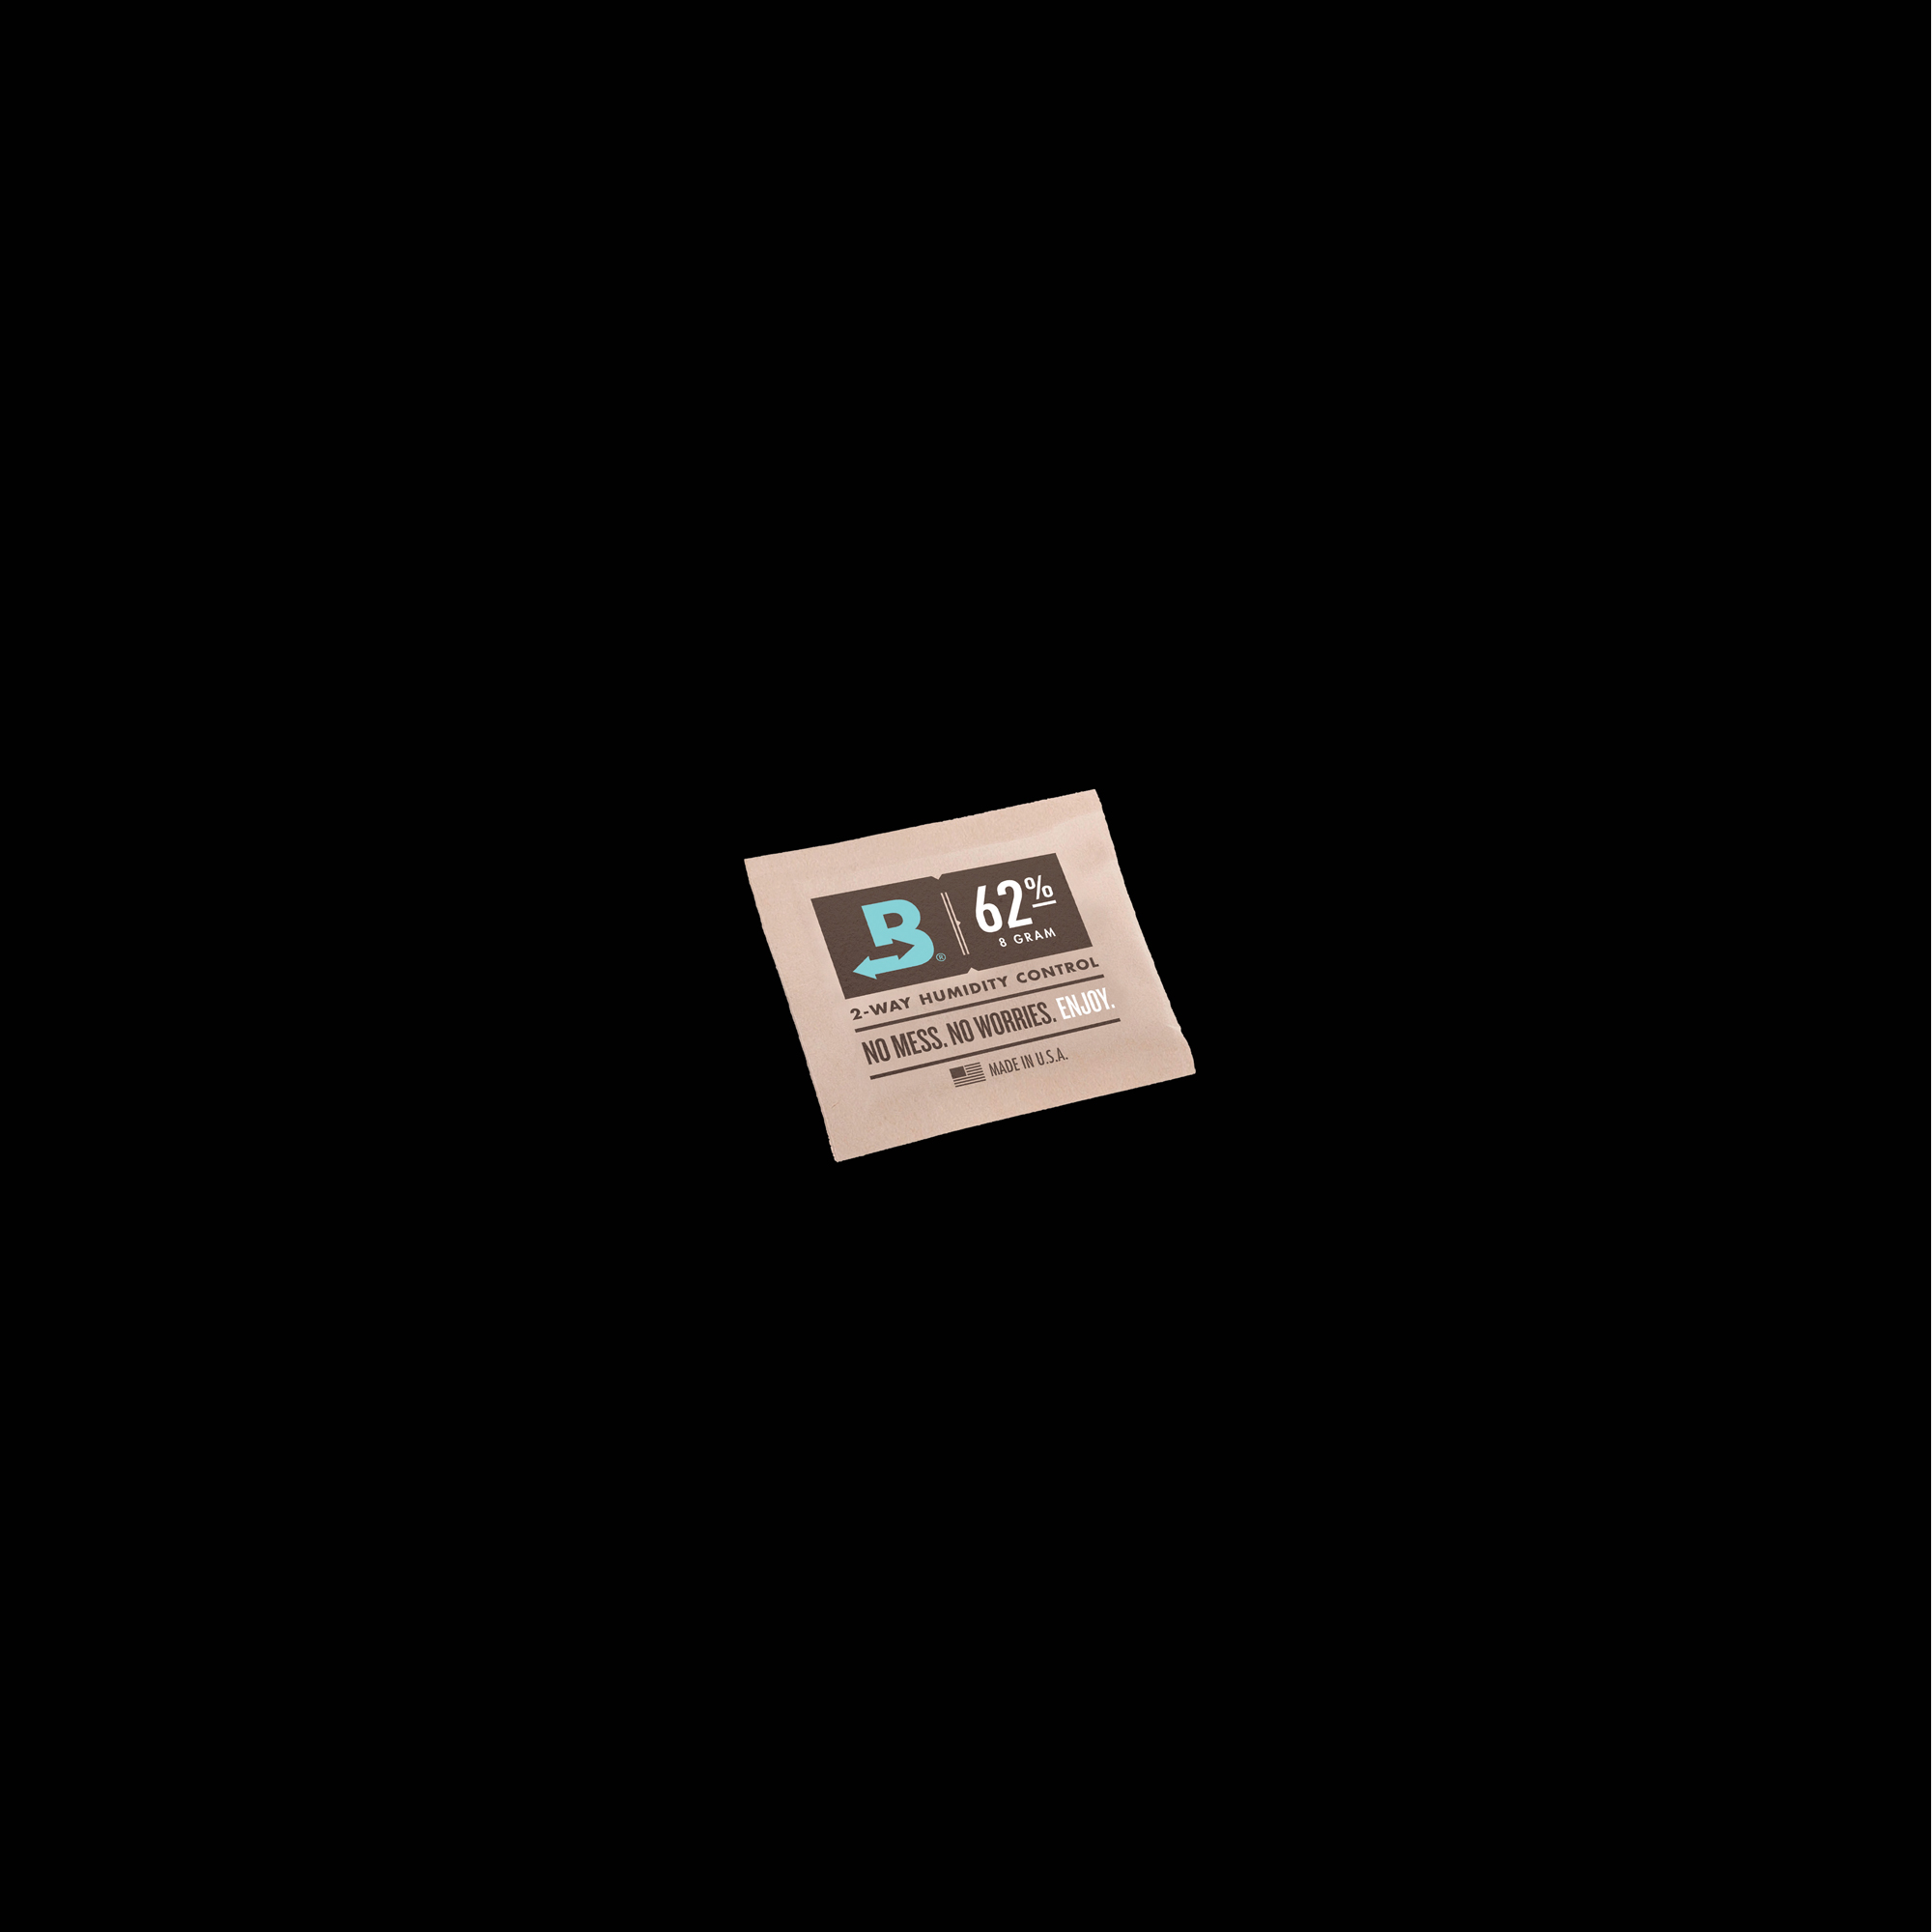 Boveda Humidity Controller 62% 8 gram packet